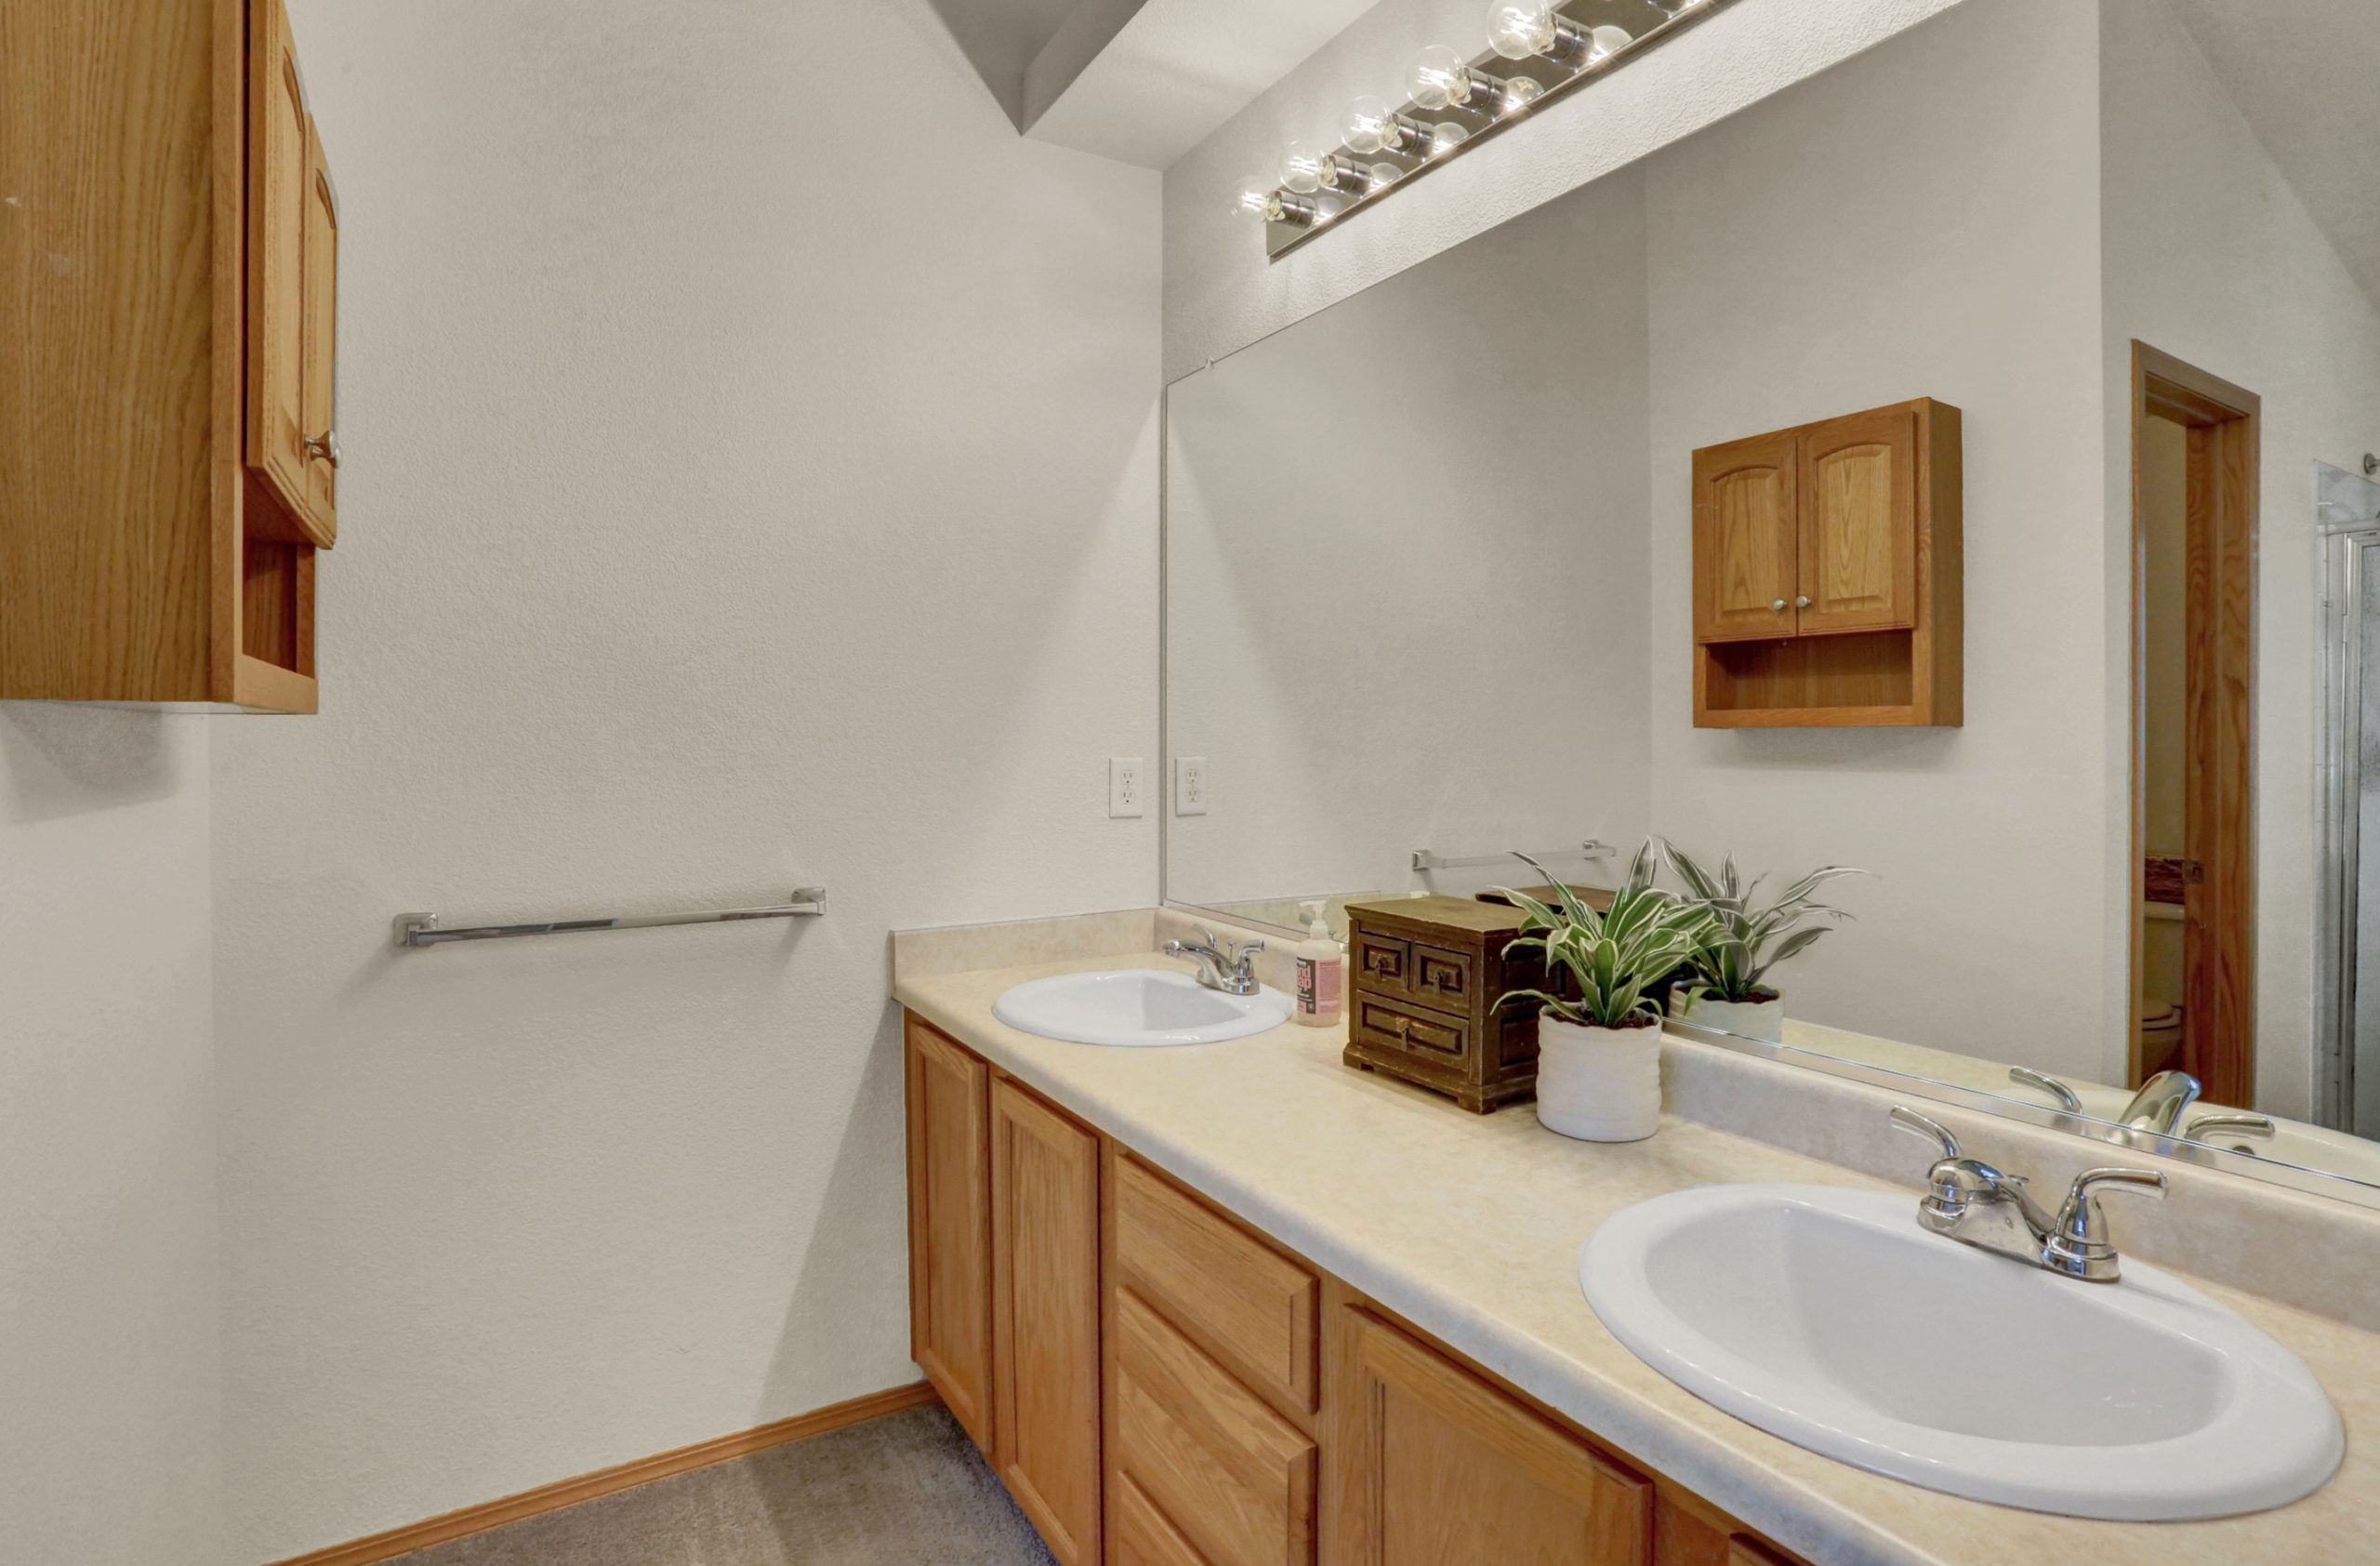 REAL ESTATE LISTING: 10502 Falcon St Firestone Master Bath Vanities